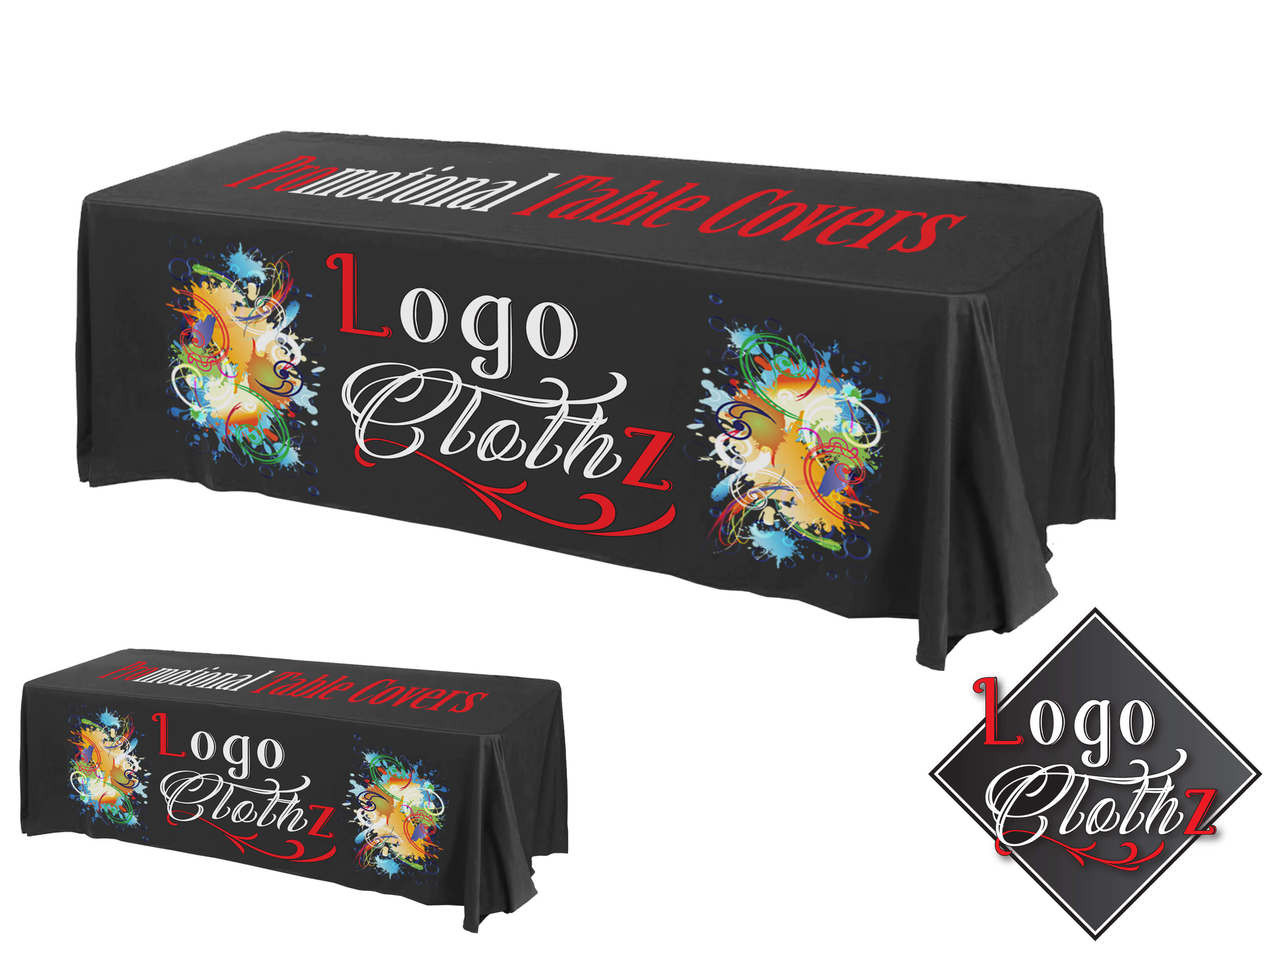 194 & 8\u0027 Trade Show Table Cover - All Over Imprint - 3 or 4 Sided